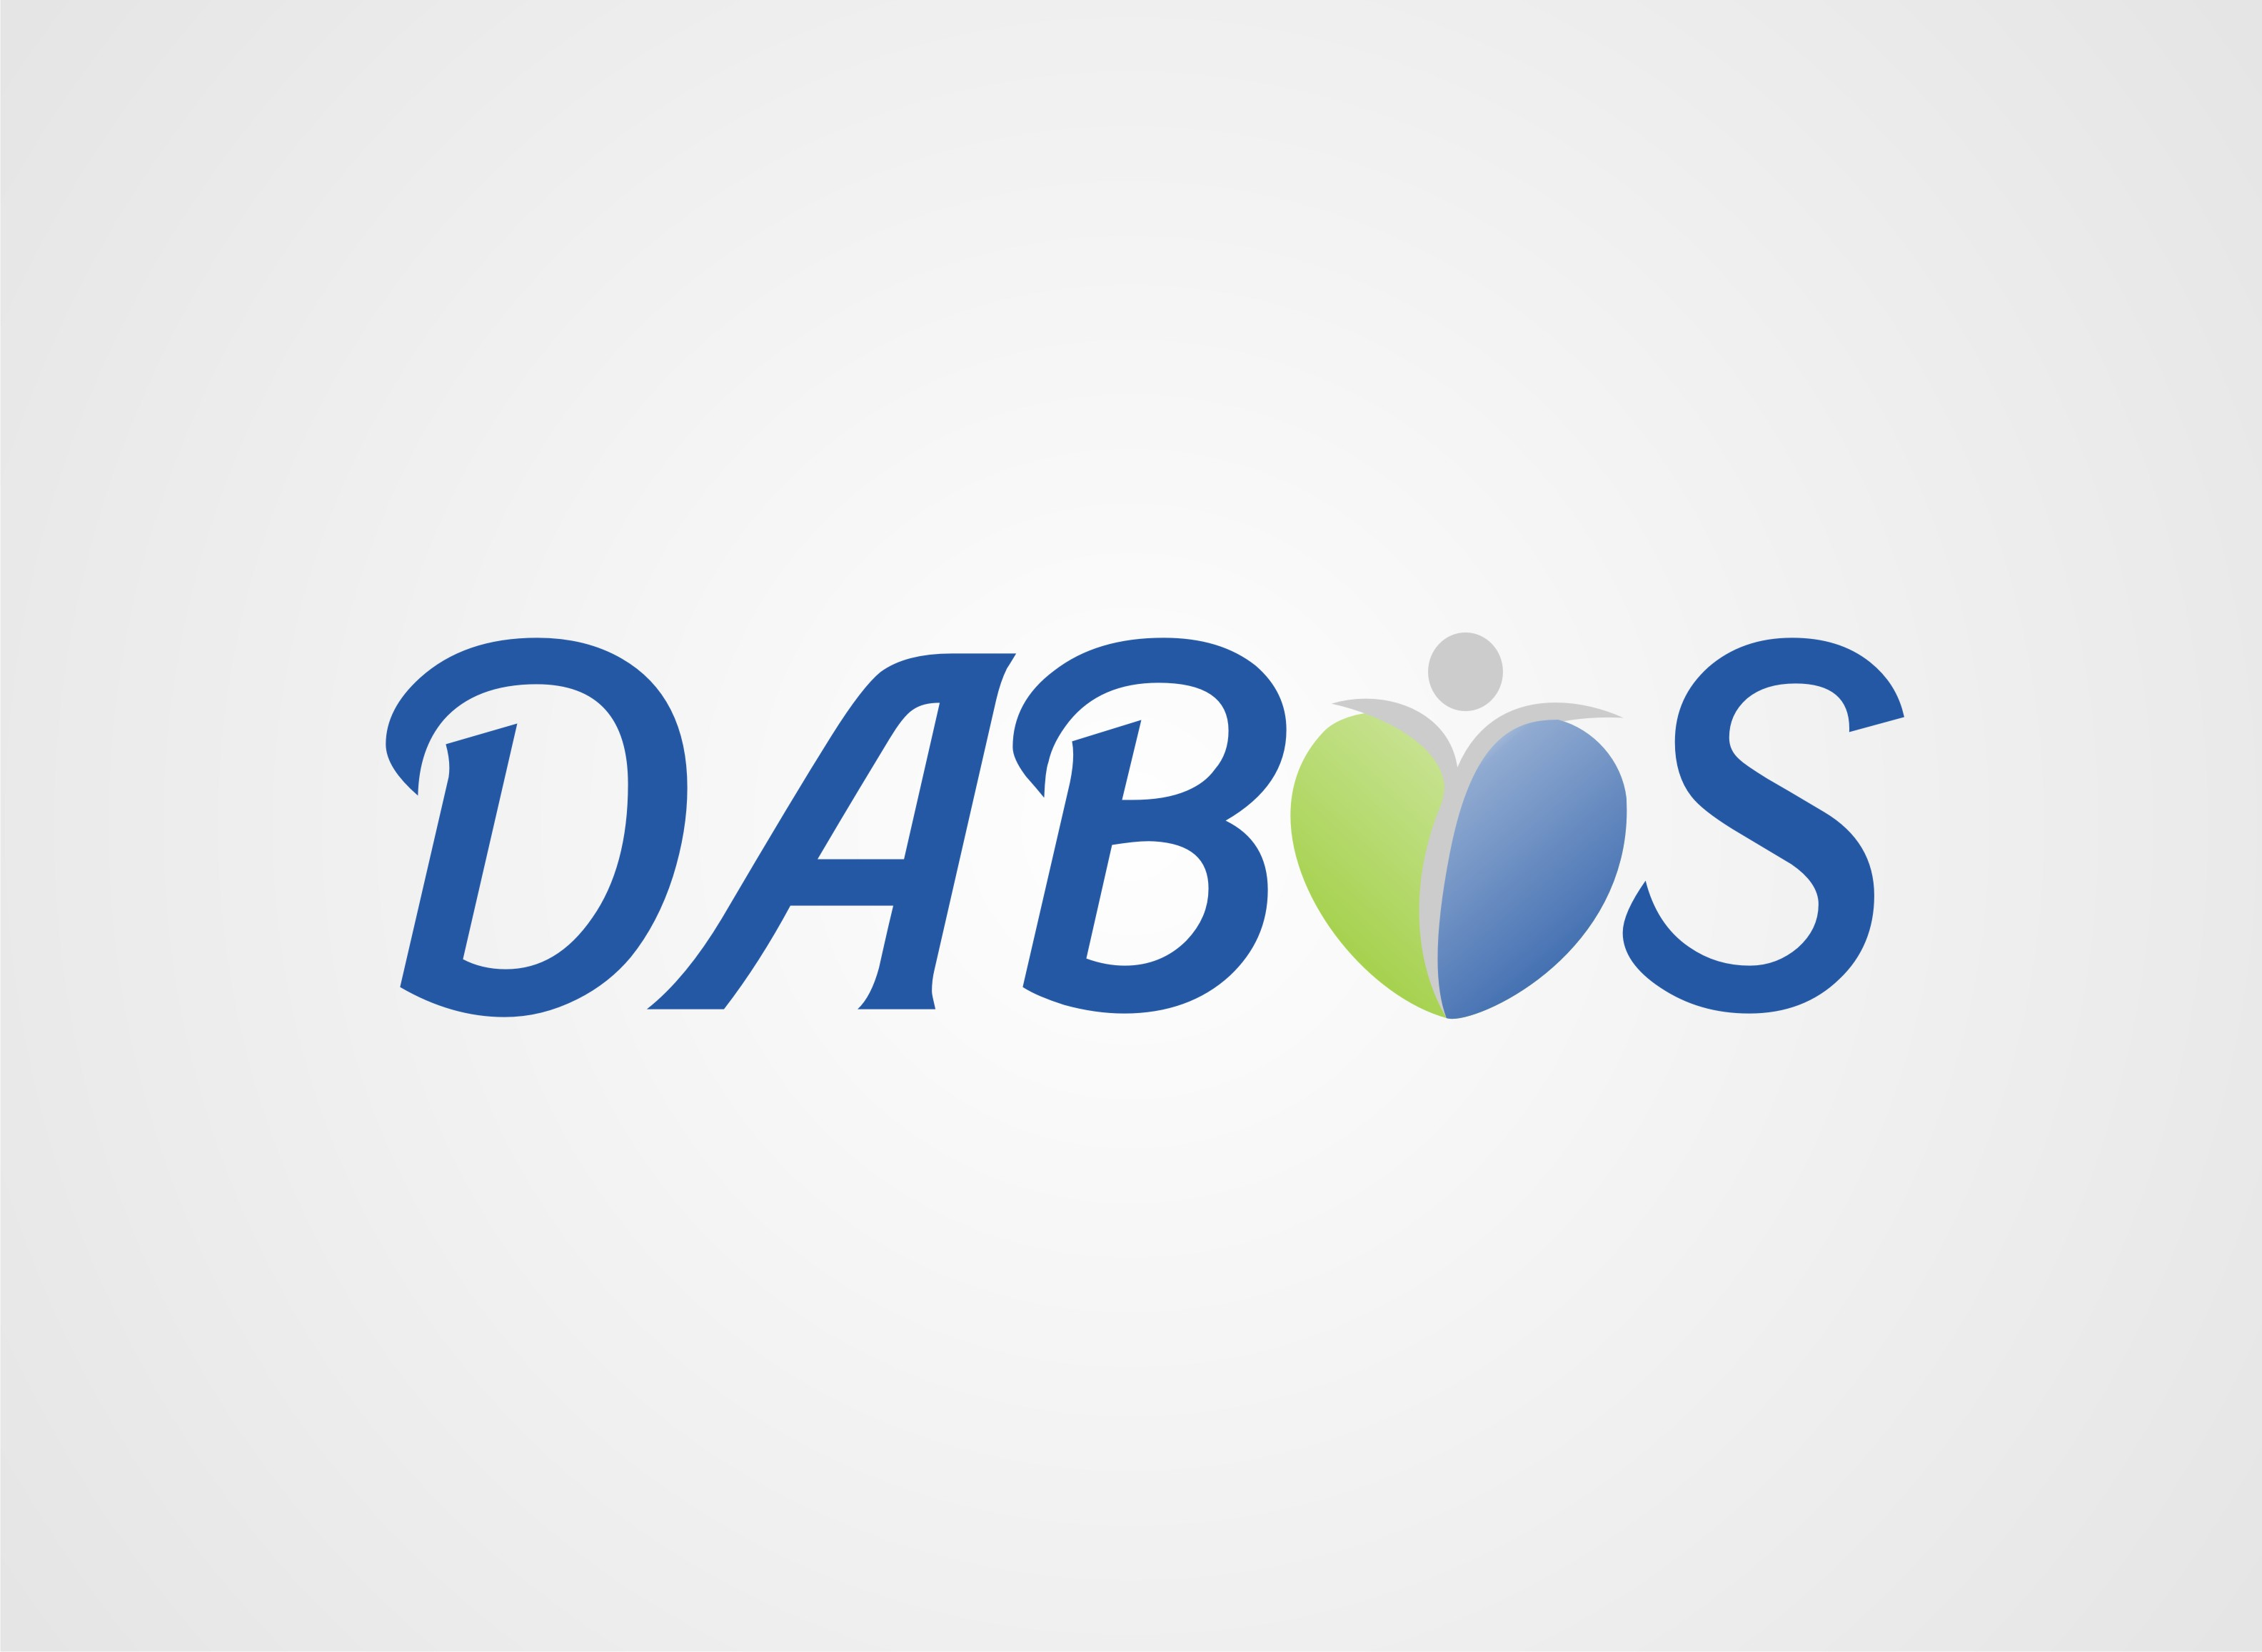 Logo Design by Charles Layos - Entry No. 123 in the Logo Design Contest Imaginative Logo Design for DABOS, Limited Liability Company.